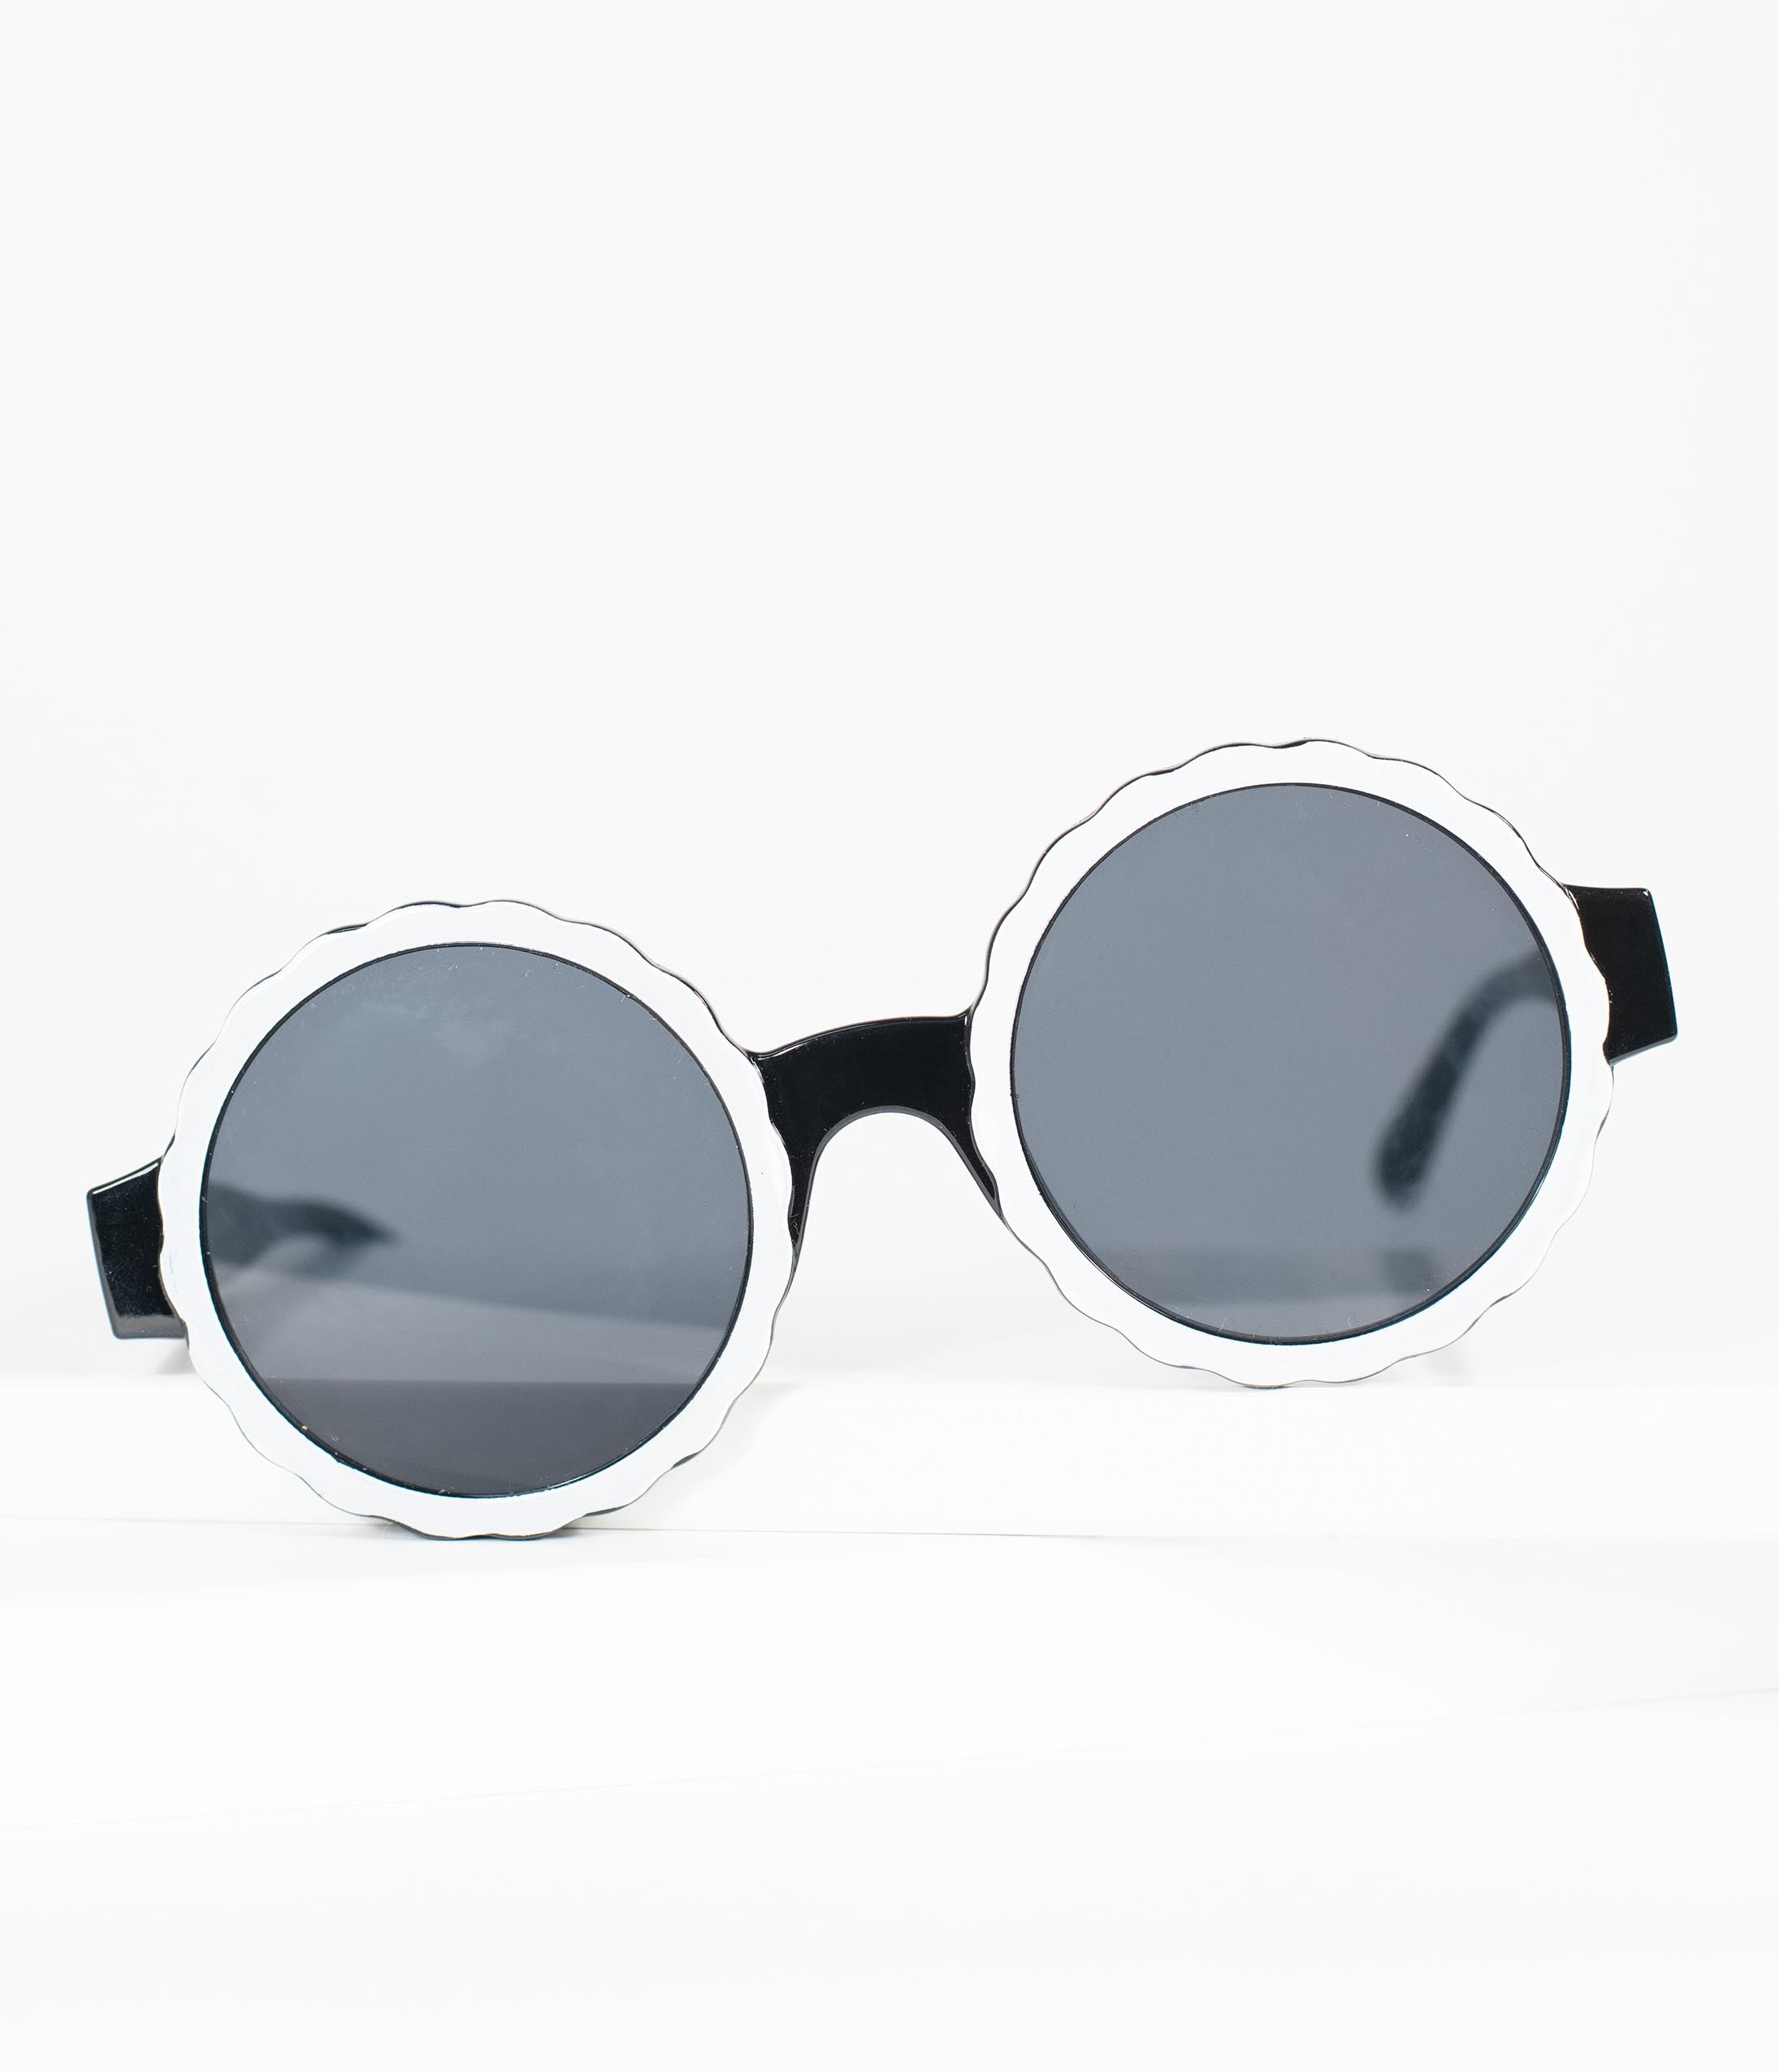 1960s Sunglasses | 70s Sunglasses, 70s Glasses 1960S Black  White Omelette Mod Sunglasses $24.00 AT vintagedancer.com